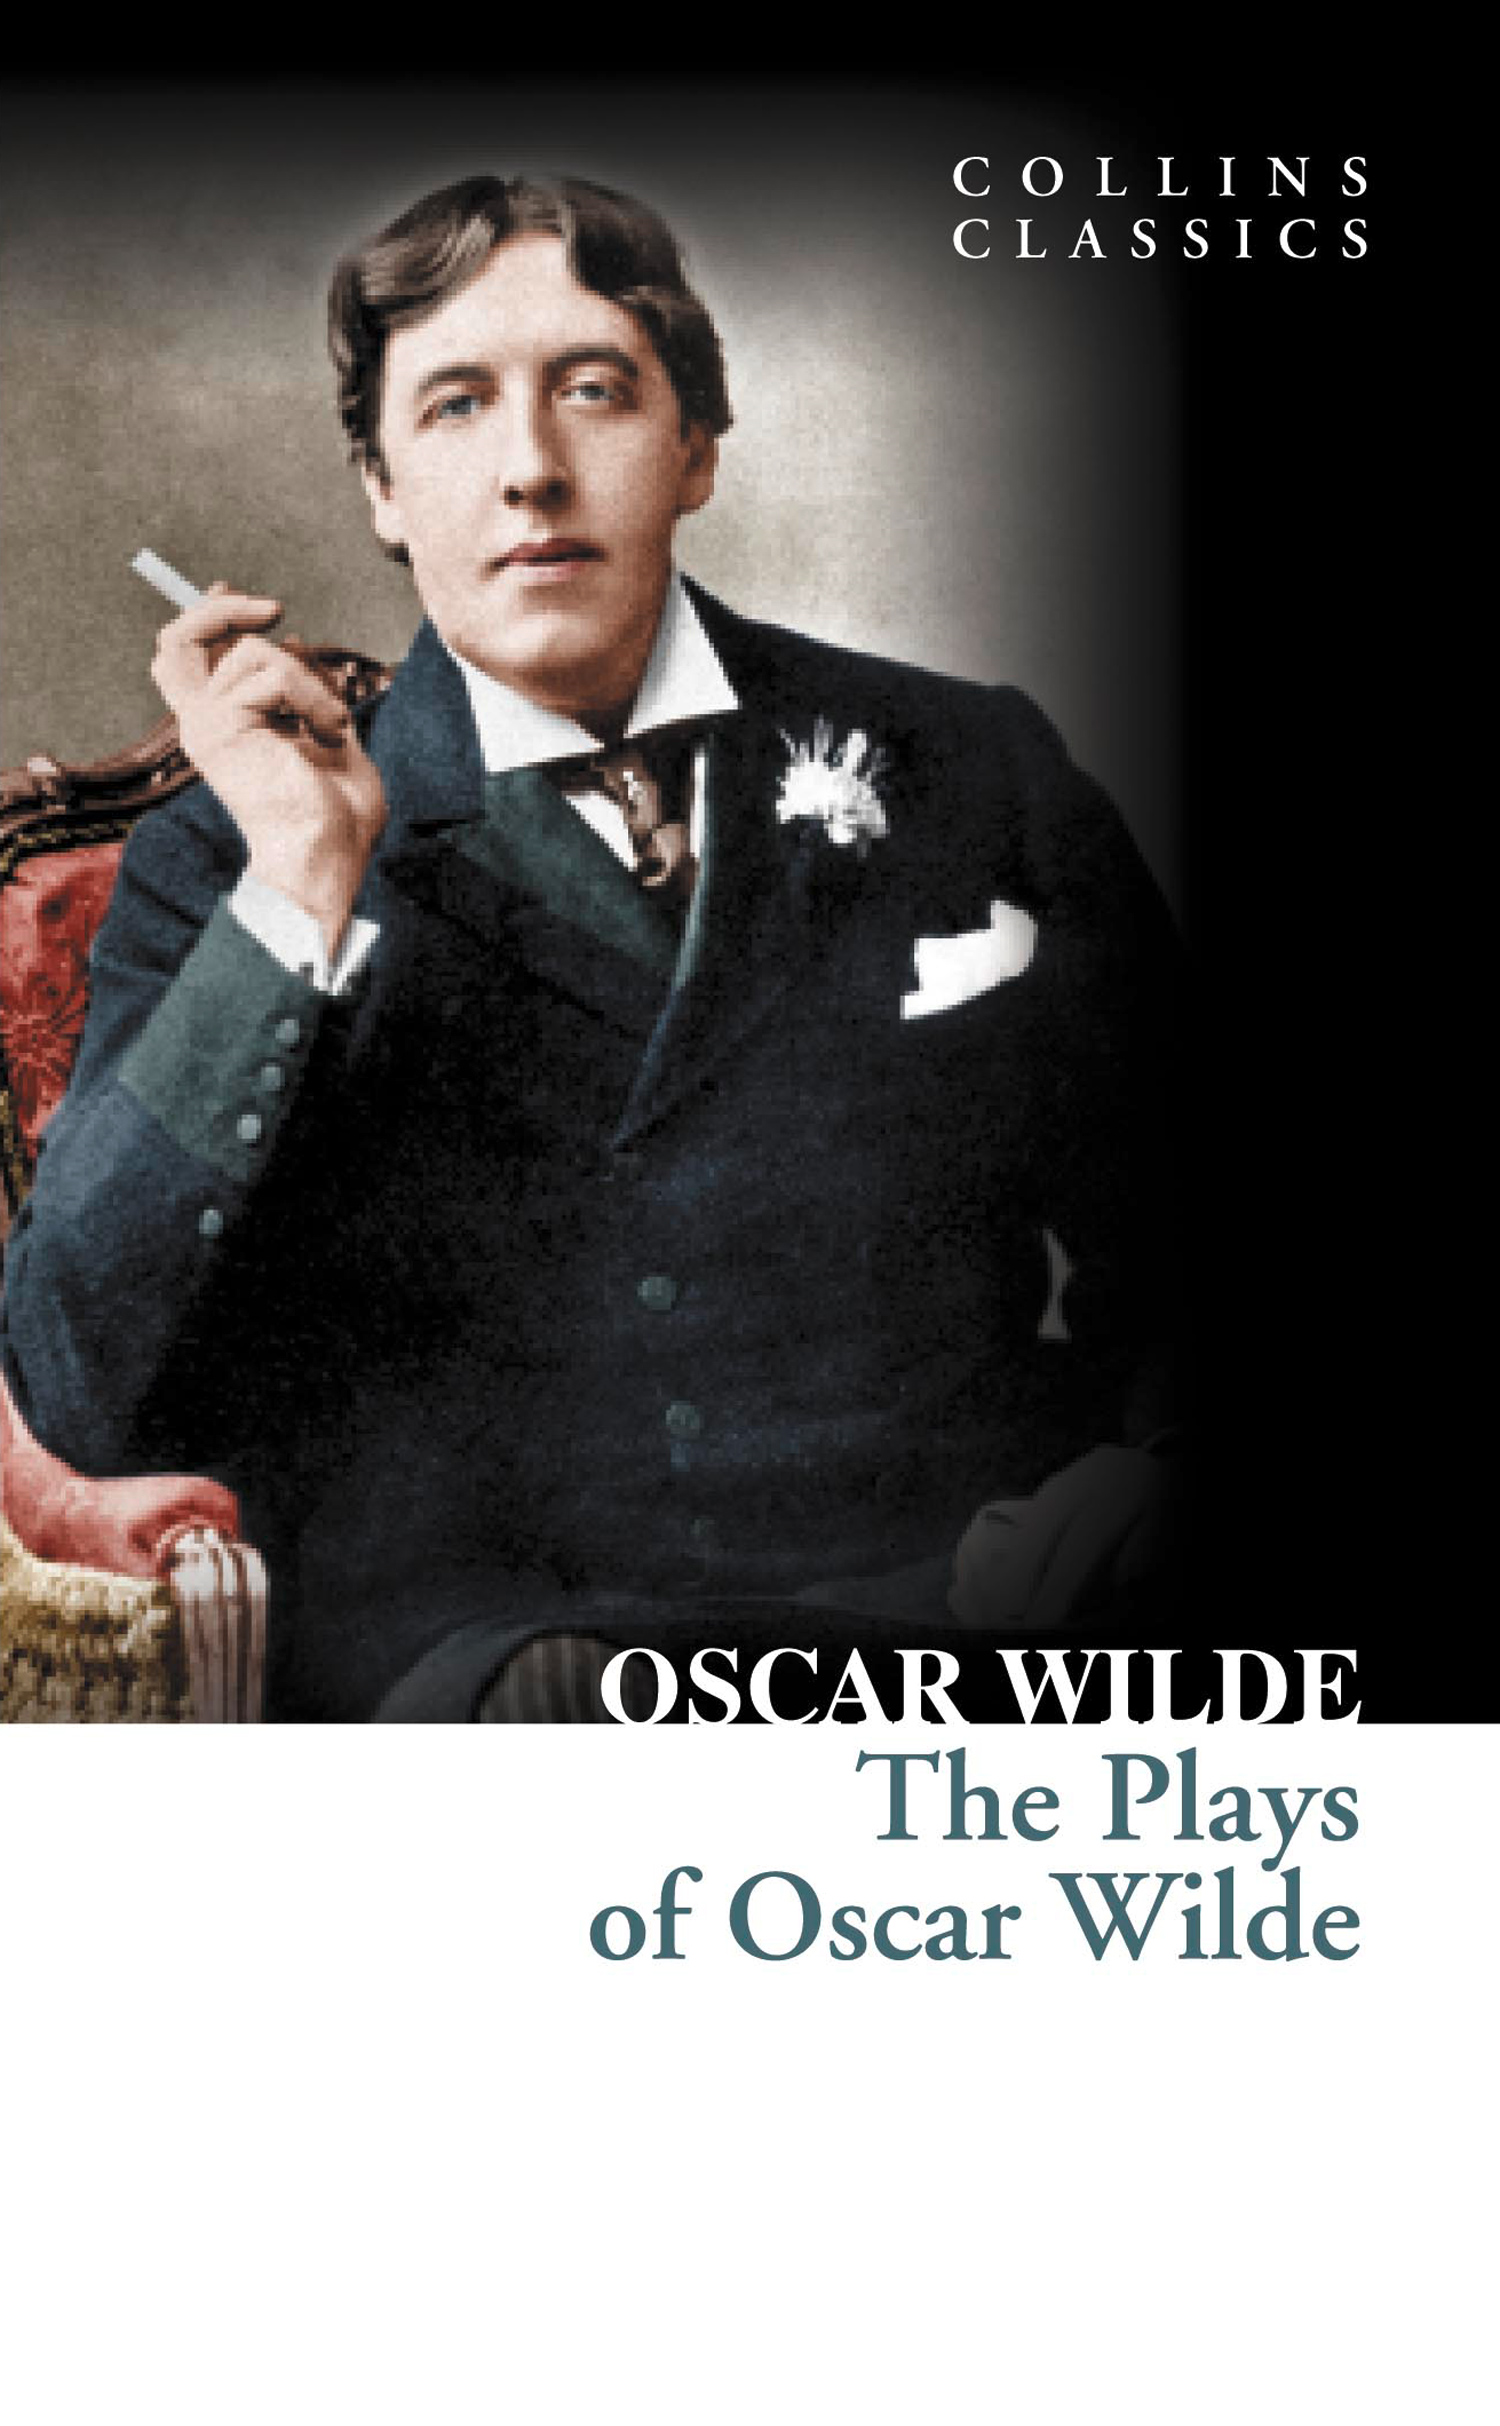 The Plays of Oscar Wilde (Collins Classics) By: Oscar Wilde